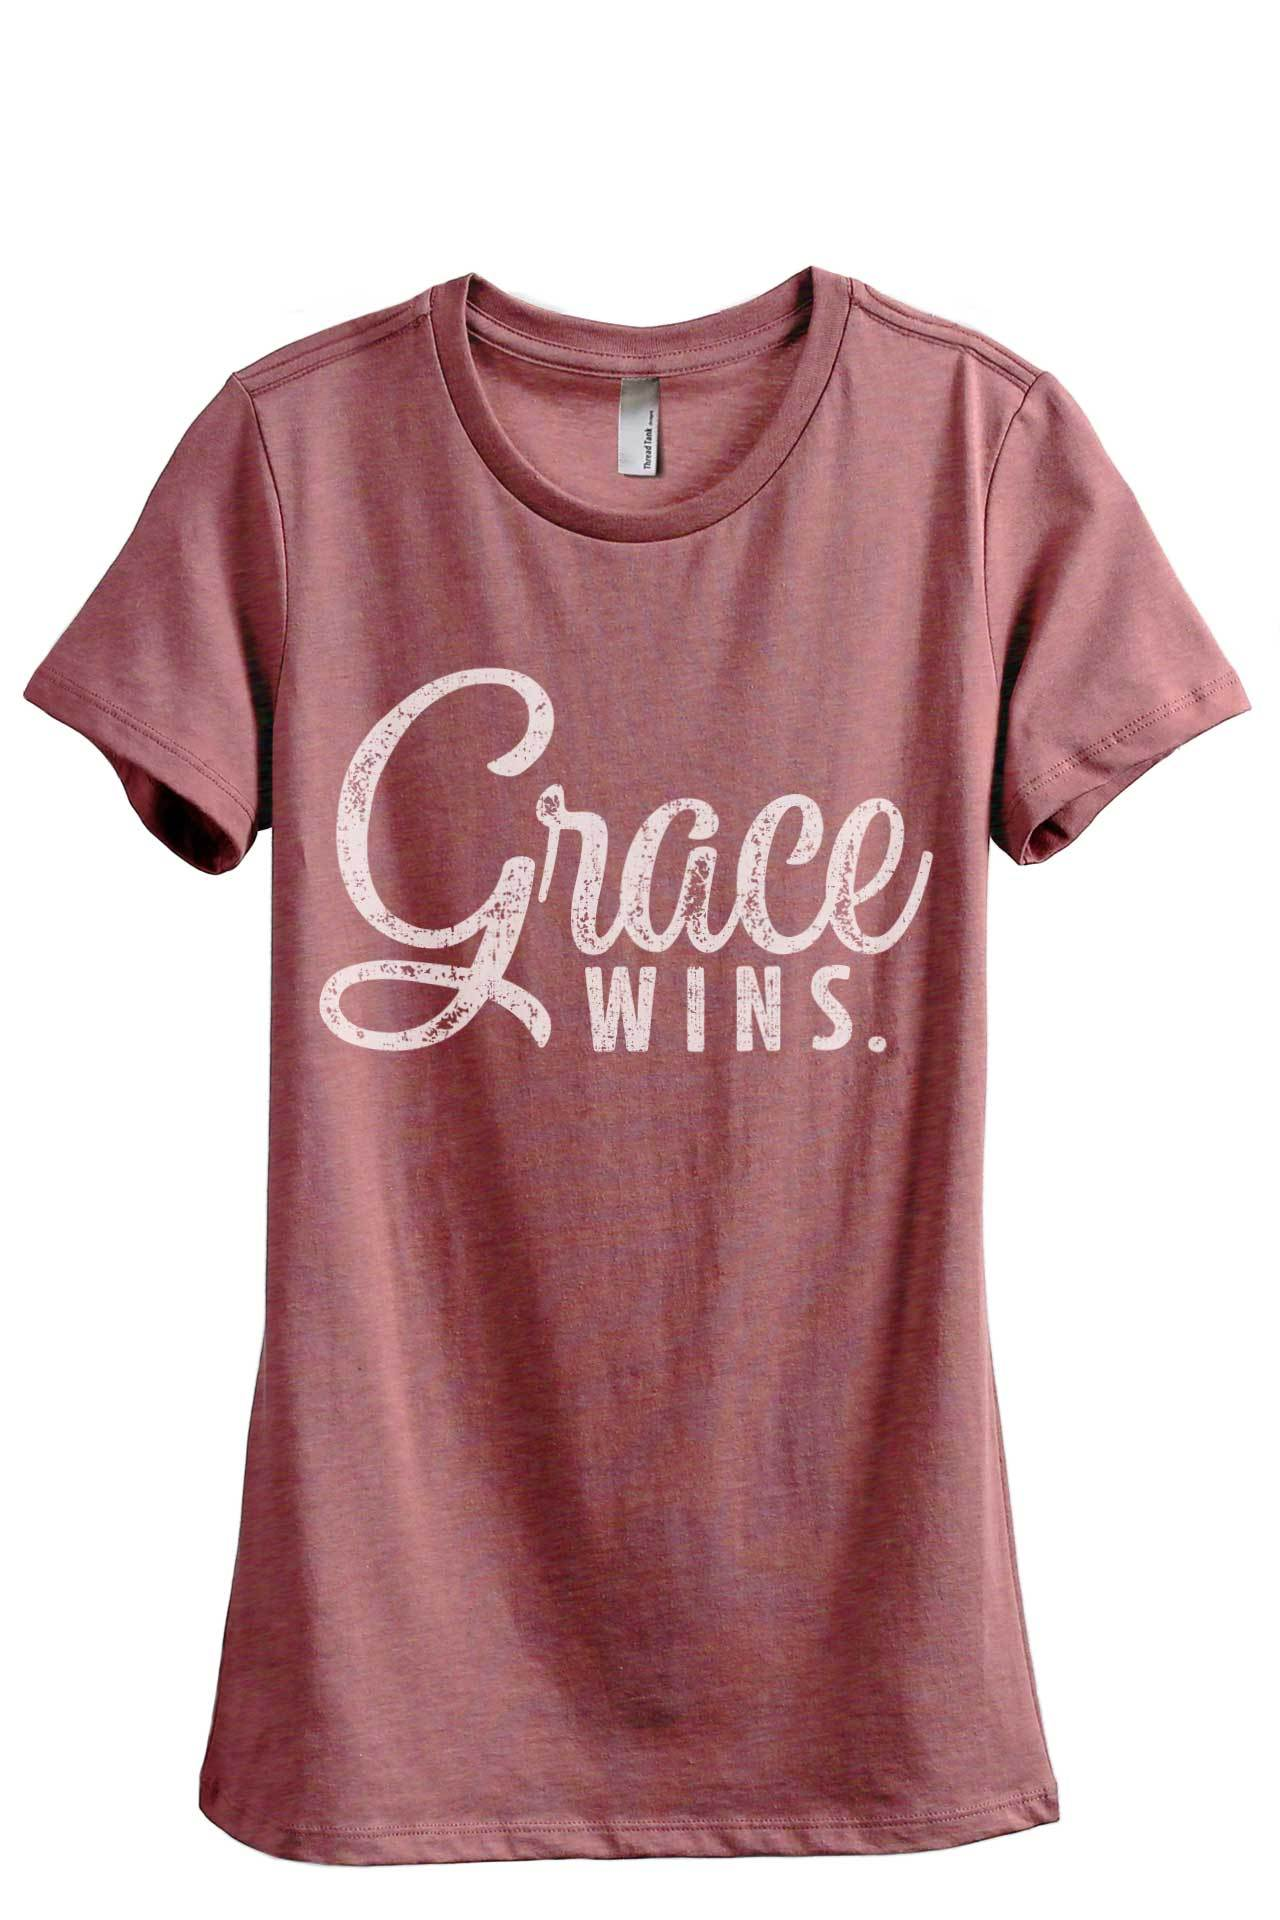 Grace Wins - Thread Tank | Stories You Can Wear | T-Shirts, Tank Tops and Sweatshirts